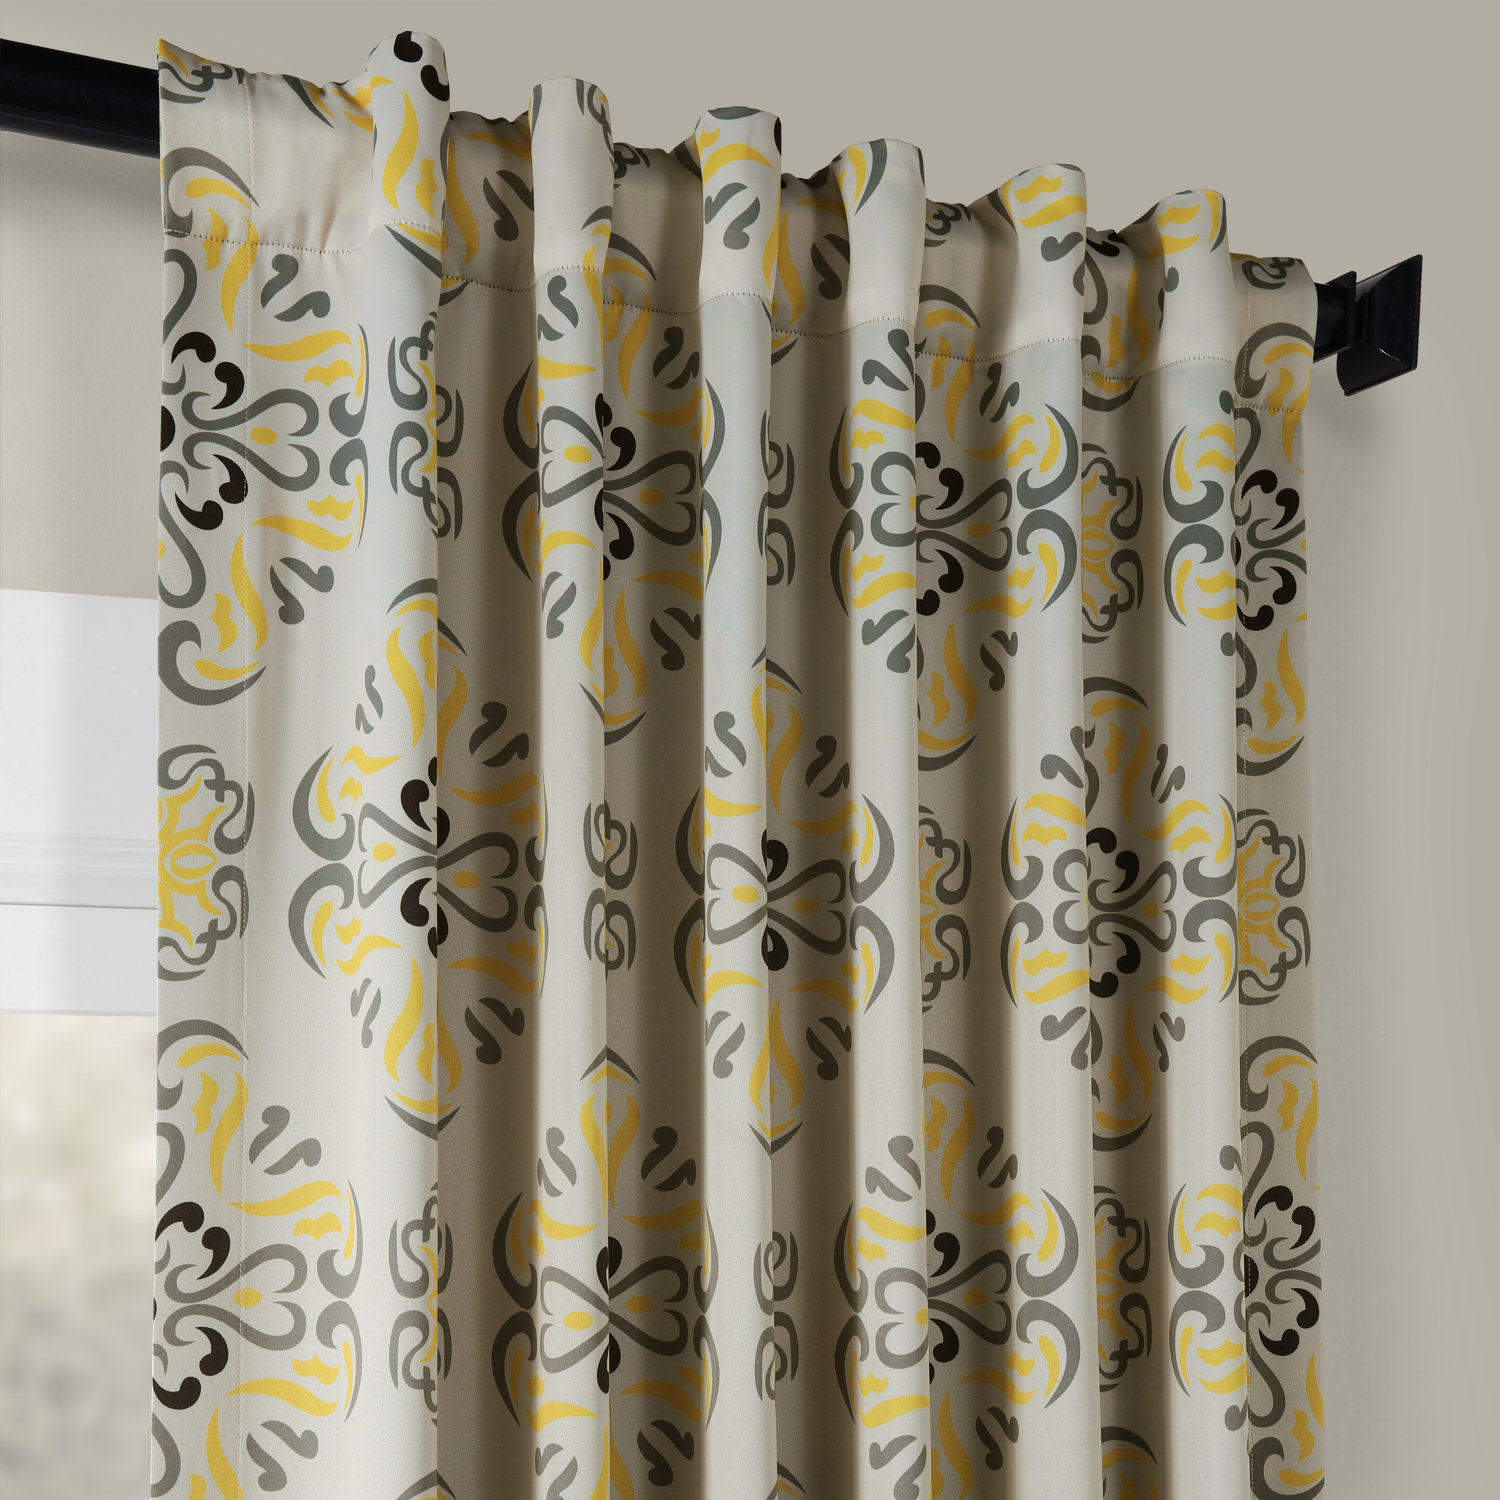 Wooden Curtain Valance Roman Shades